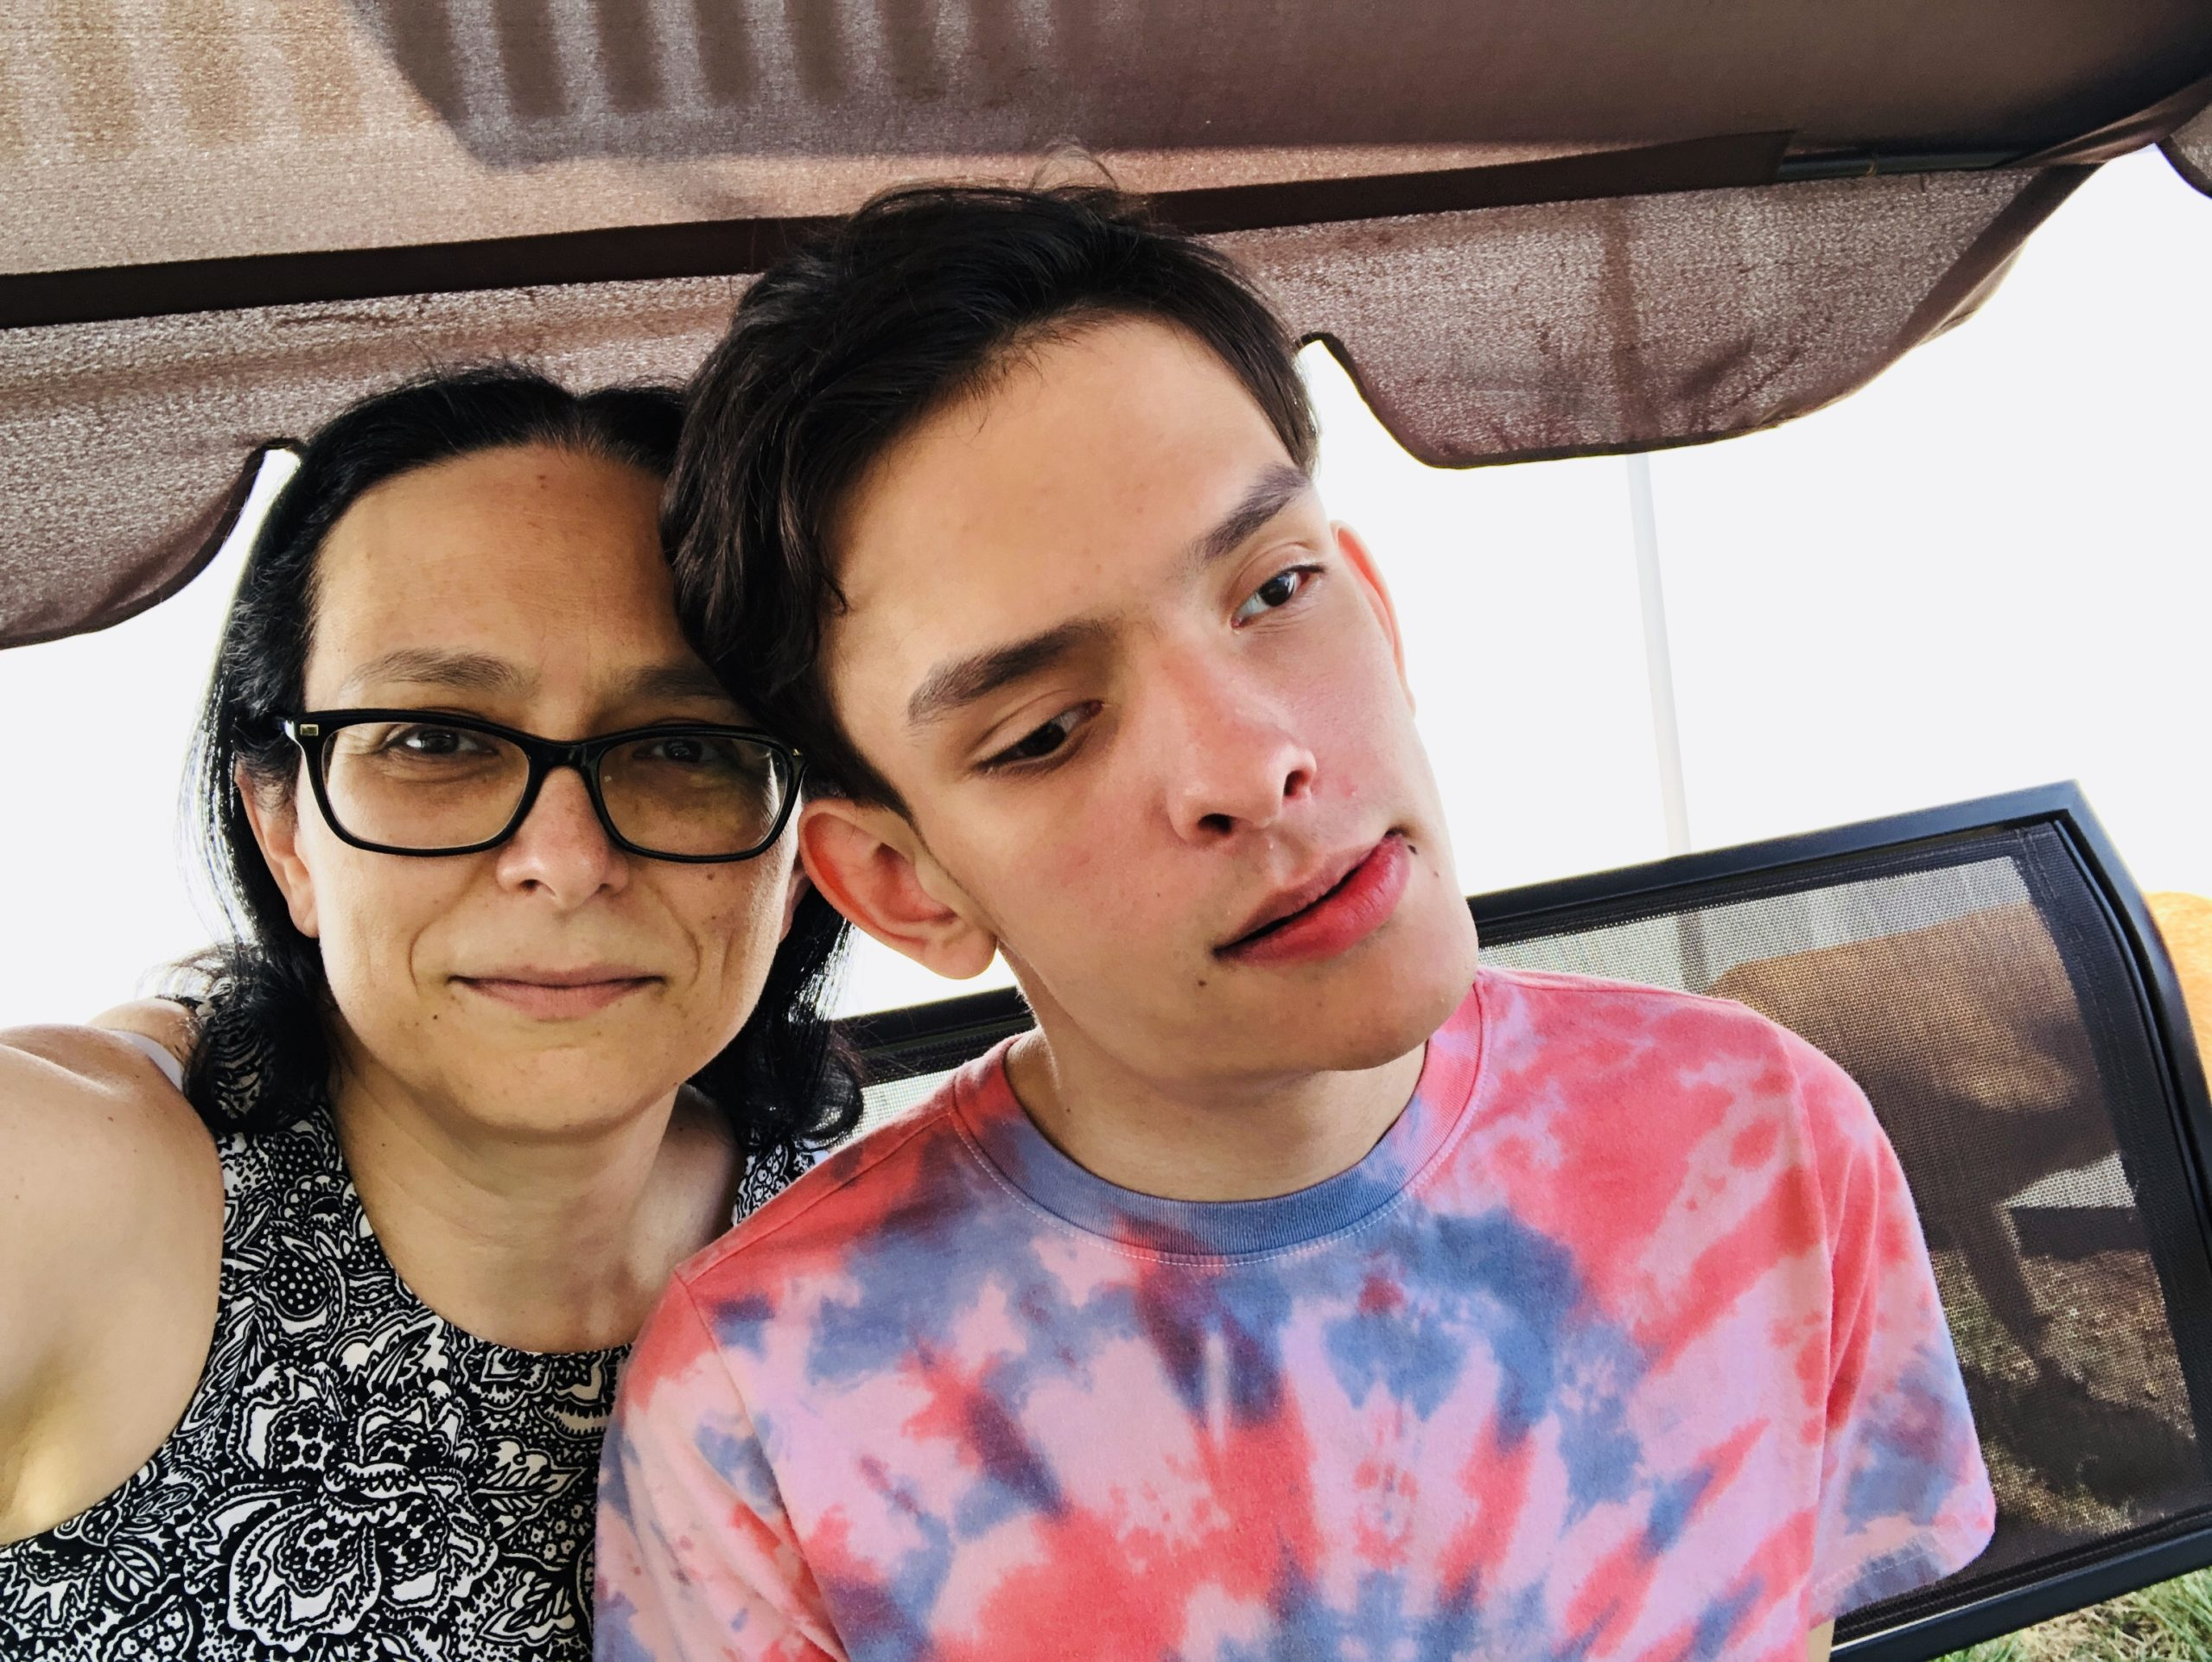 A selfie showing Amber on the left and Ivan on the right. Amber has long, dark brown hair, and wears a black and white patterend shirt and glasses. Ivan has short, dark brown hair and wears a red and blue tie-dye t-shirt.